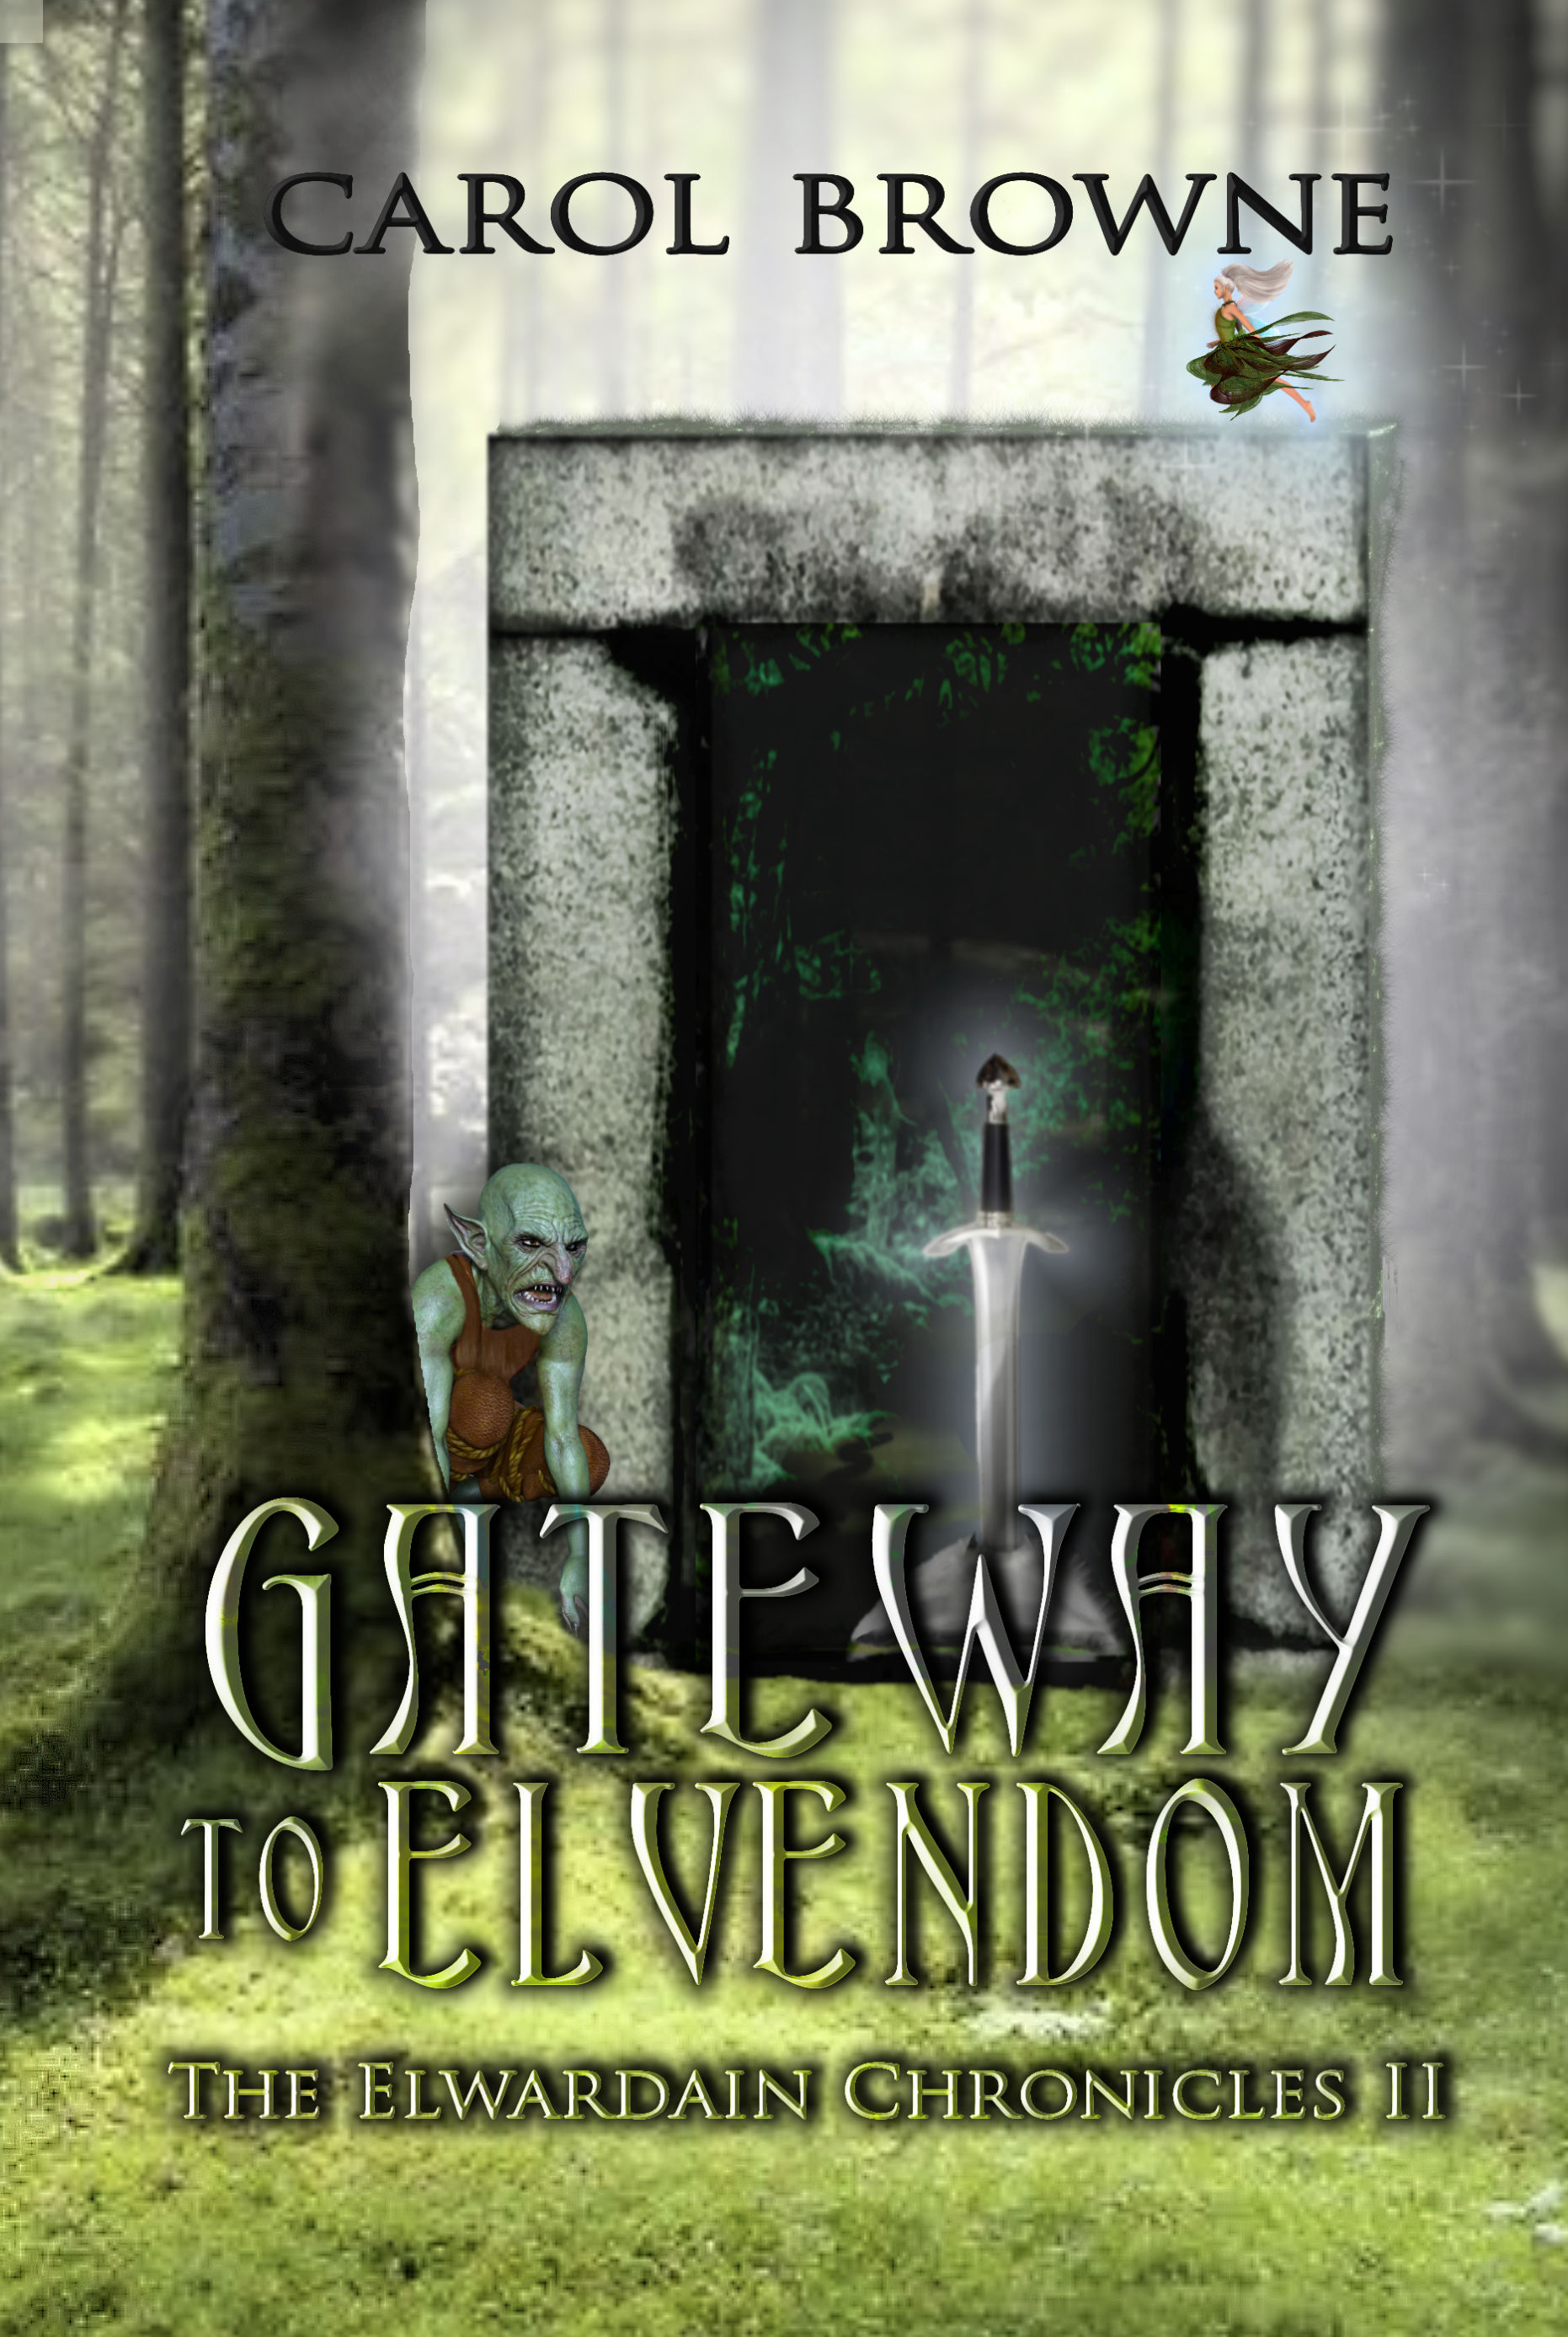 Gateway to Elvendom by Carol Browne